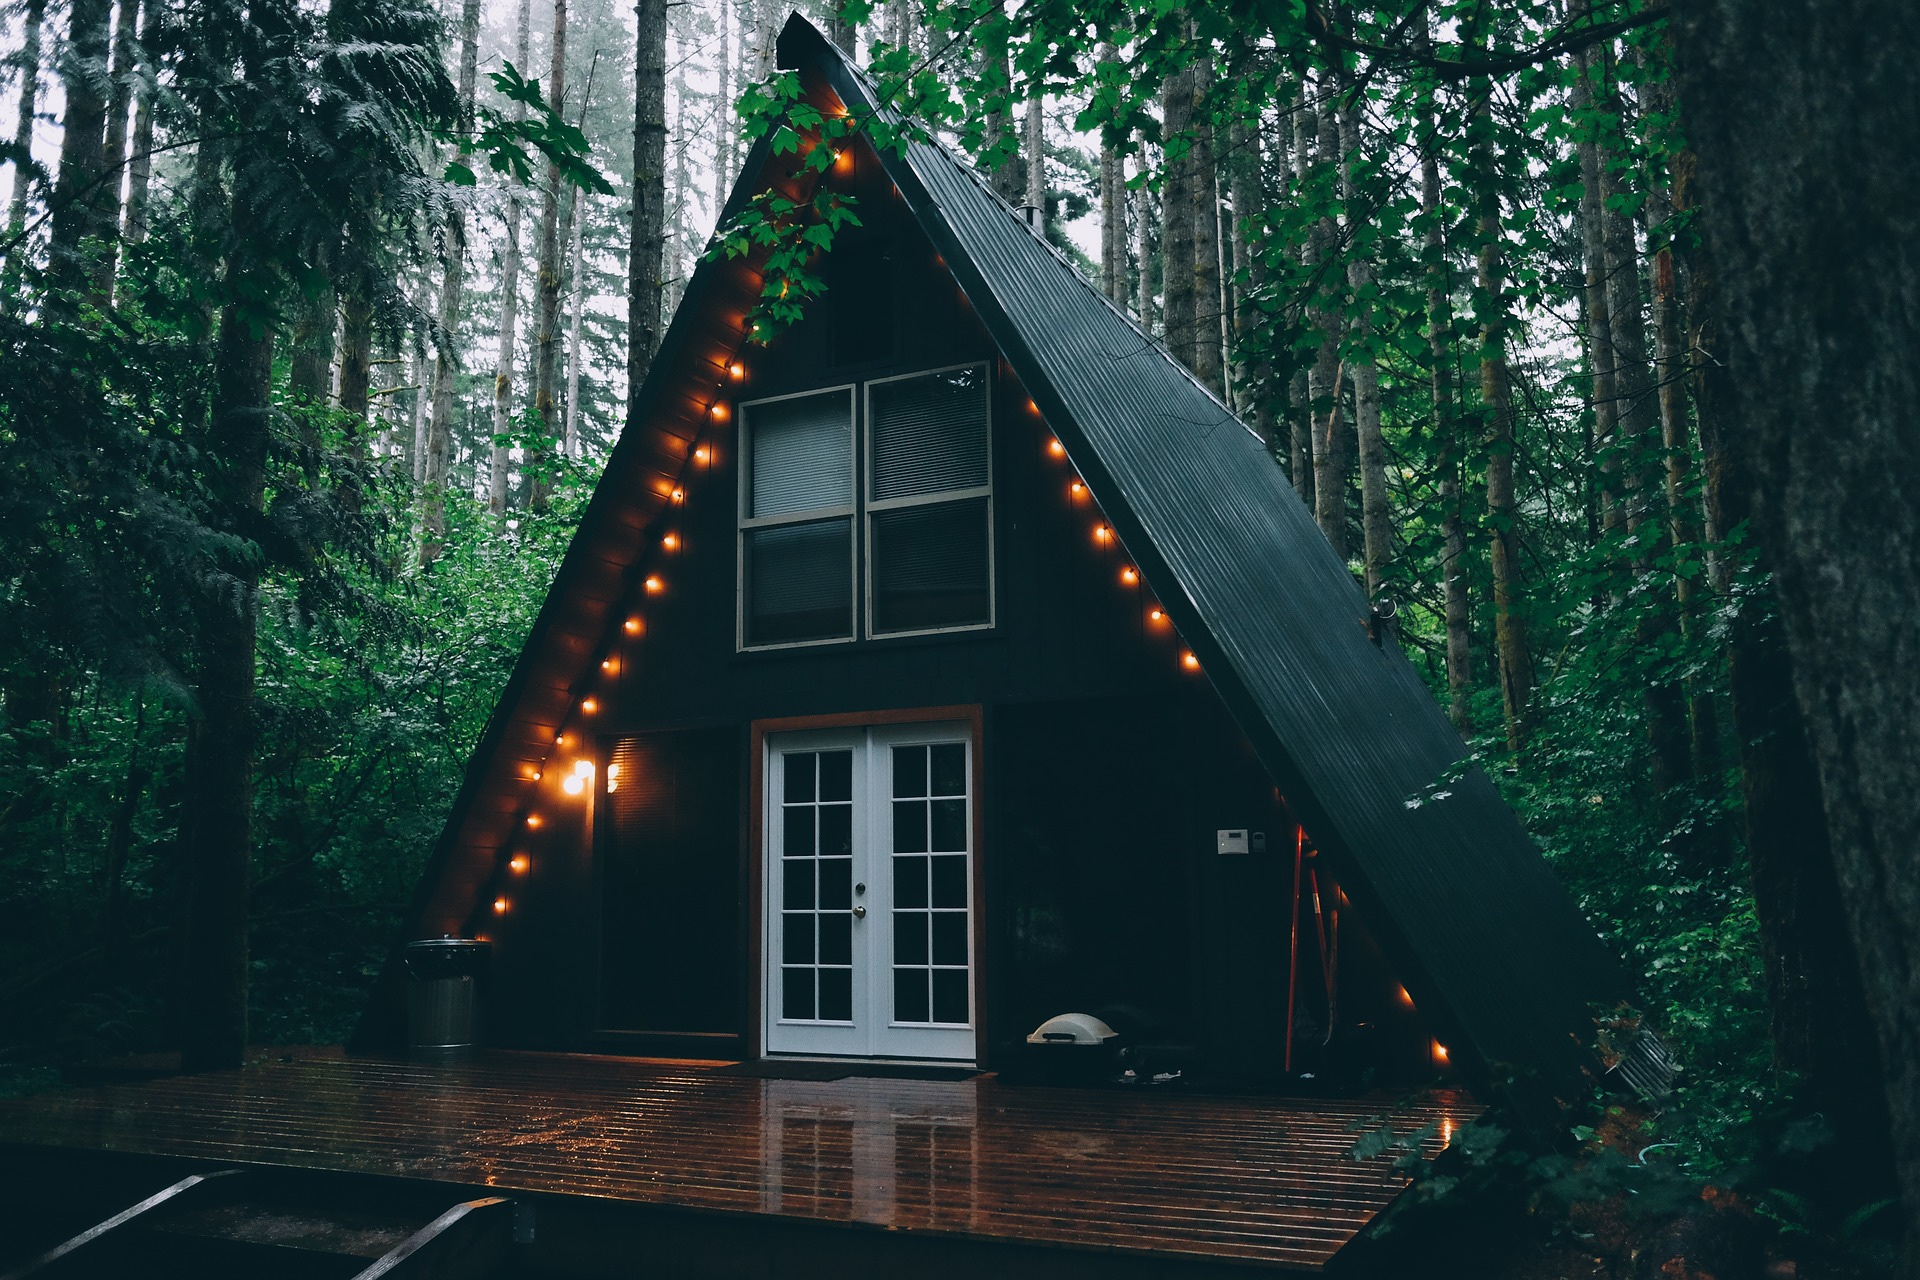 Where to Stay - The Best Accommodation Near Muir Woods